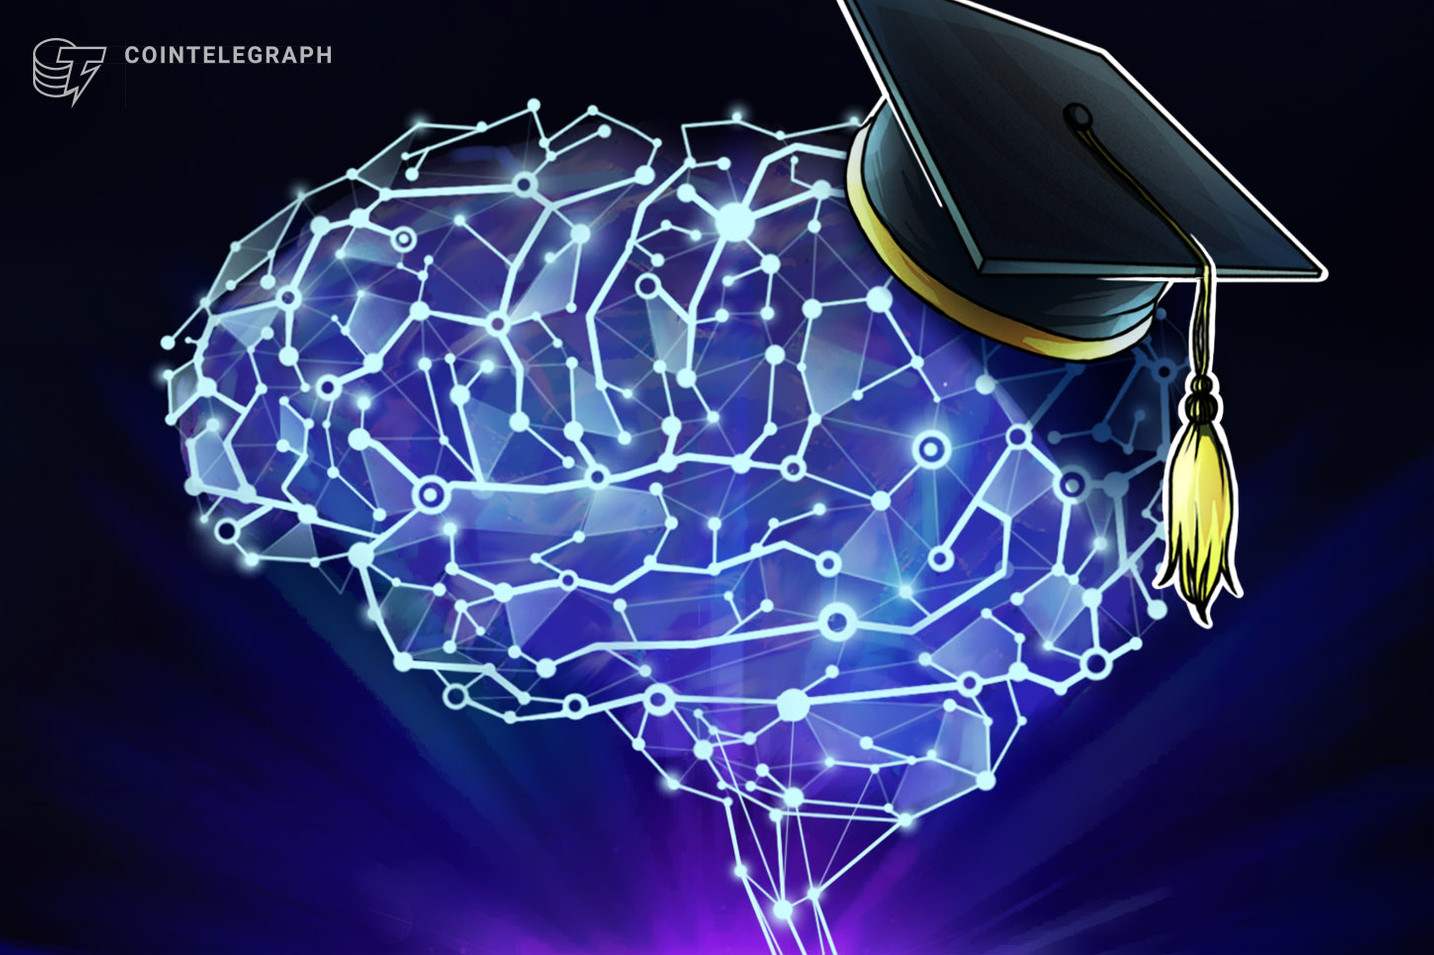 US Ivy League University Rolls Out Online Course in Blockchain and Cryptocurrency